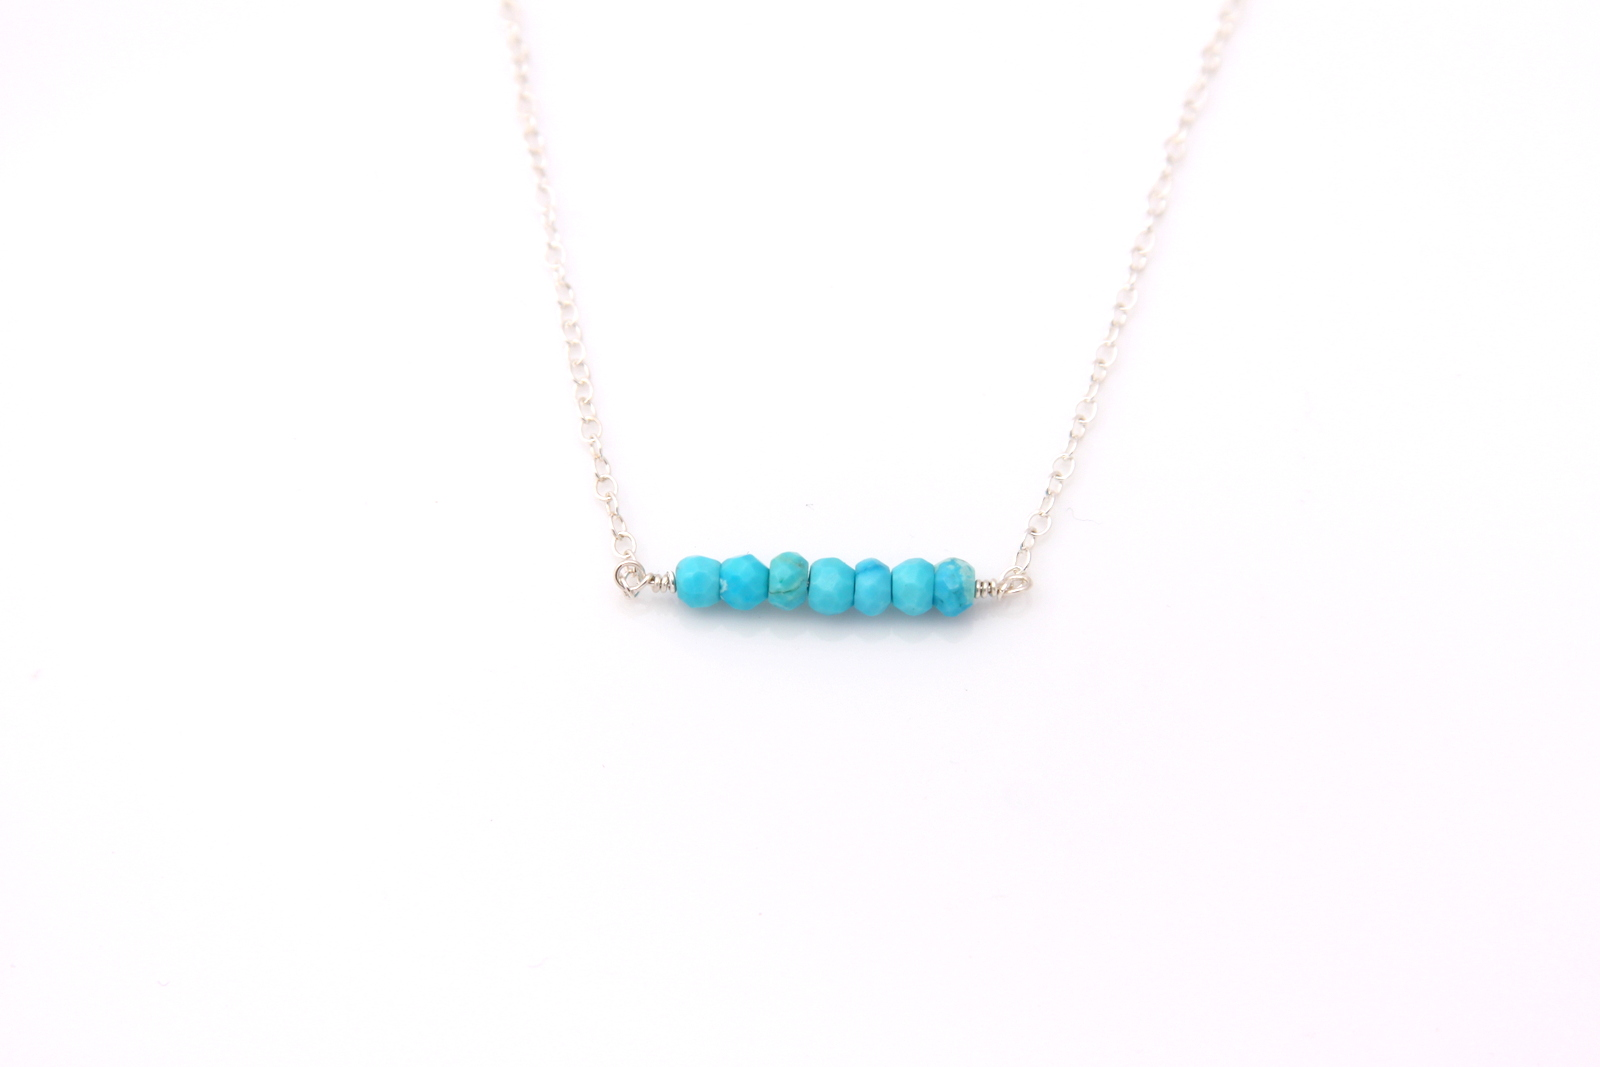 product by long sleeping lisa native multi pete curtis turquoise chaves artist green strand american jewellery jewelry blue necklace photo beauty